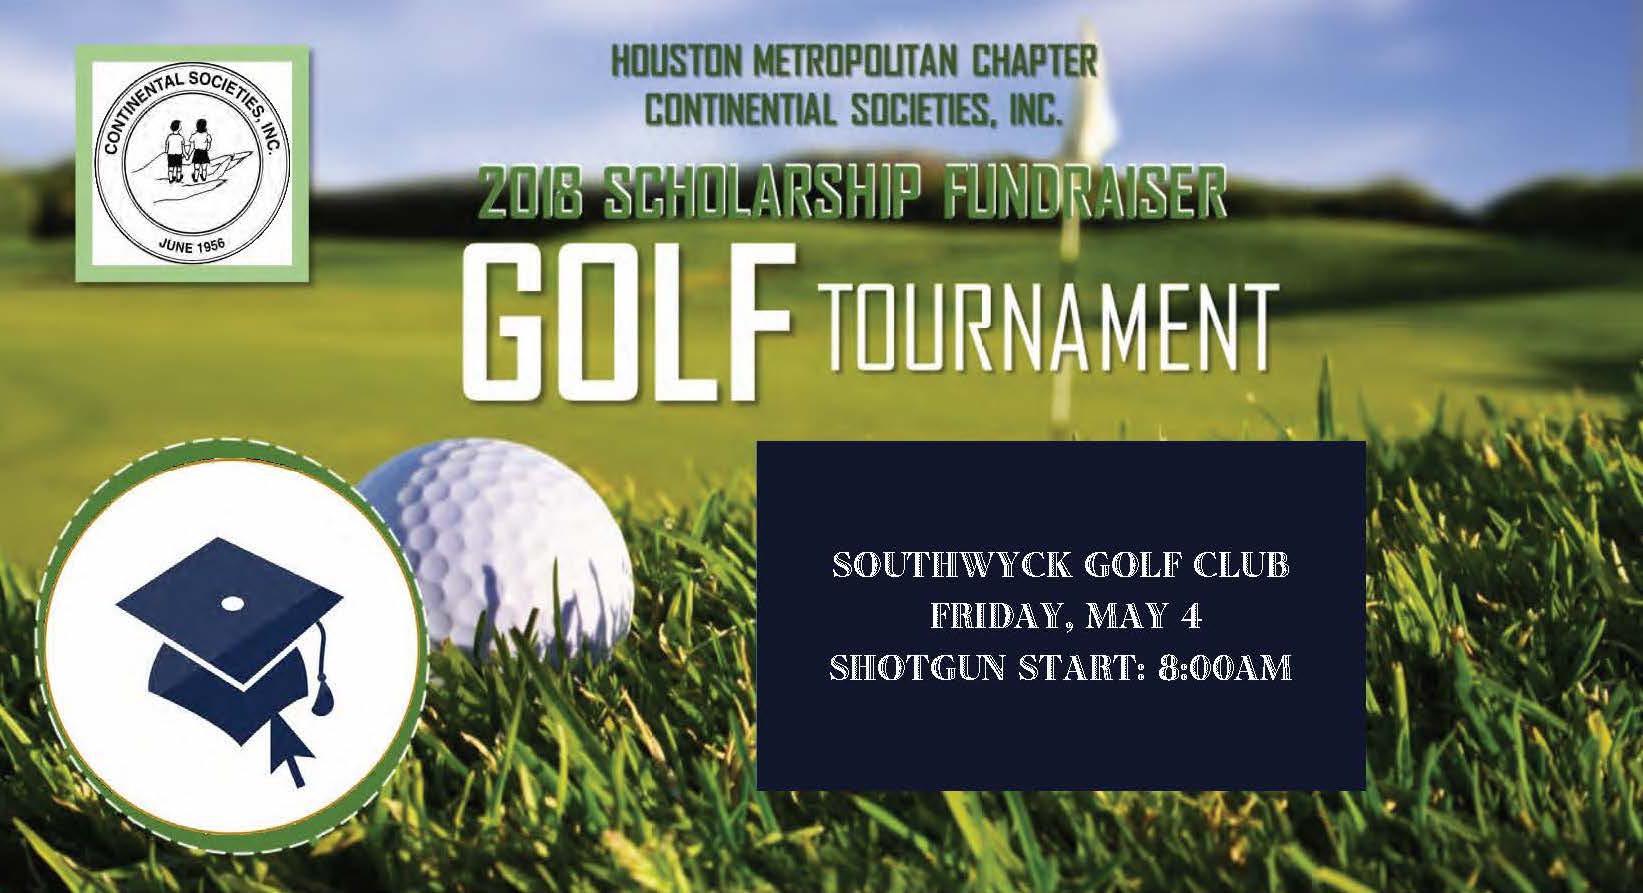 Houston Metropolitan Chapter Continental Societies, Inc. 2018 Golf Tournament